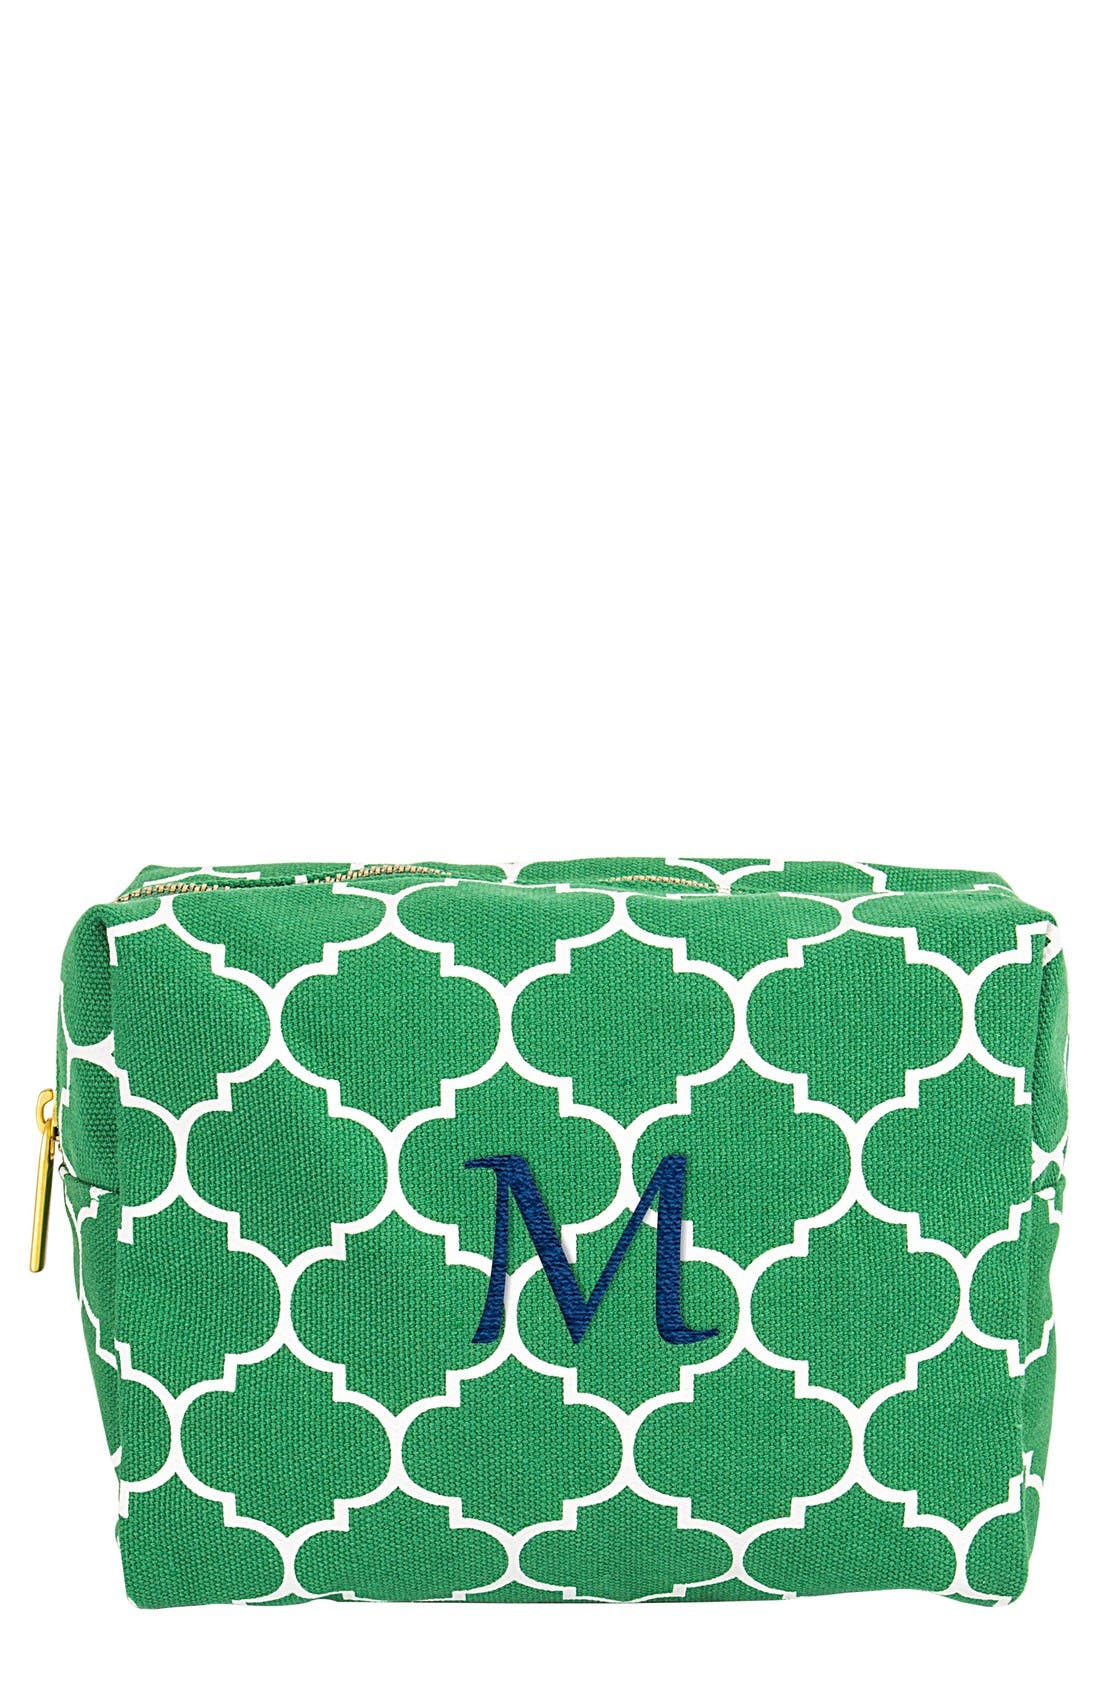 Monogram Cosmetics Bag,                         Main,                         color, Green-M